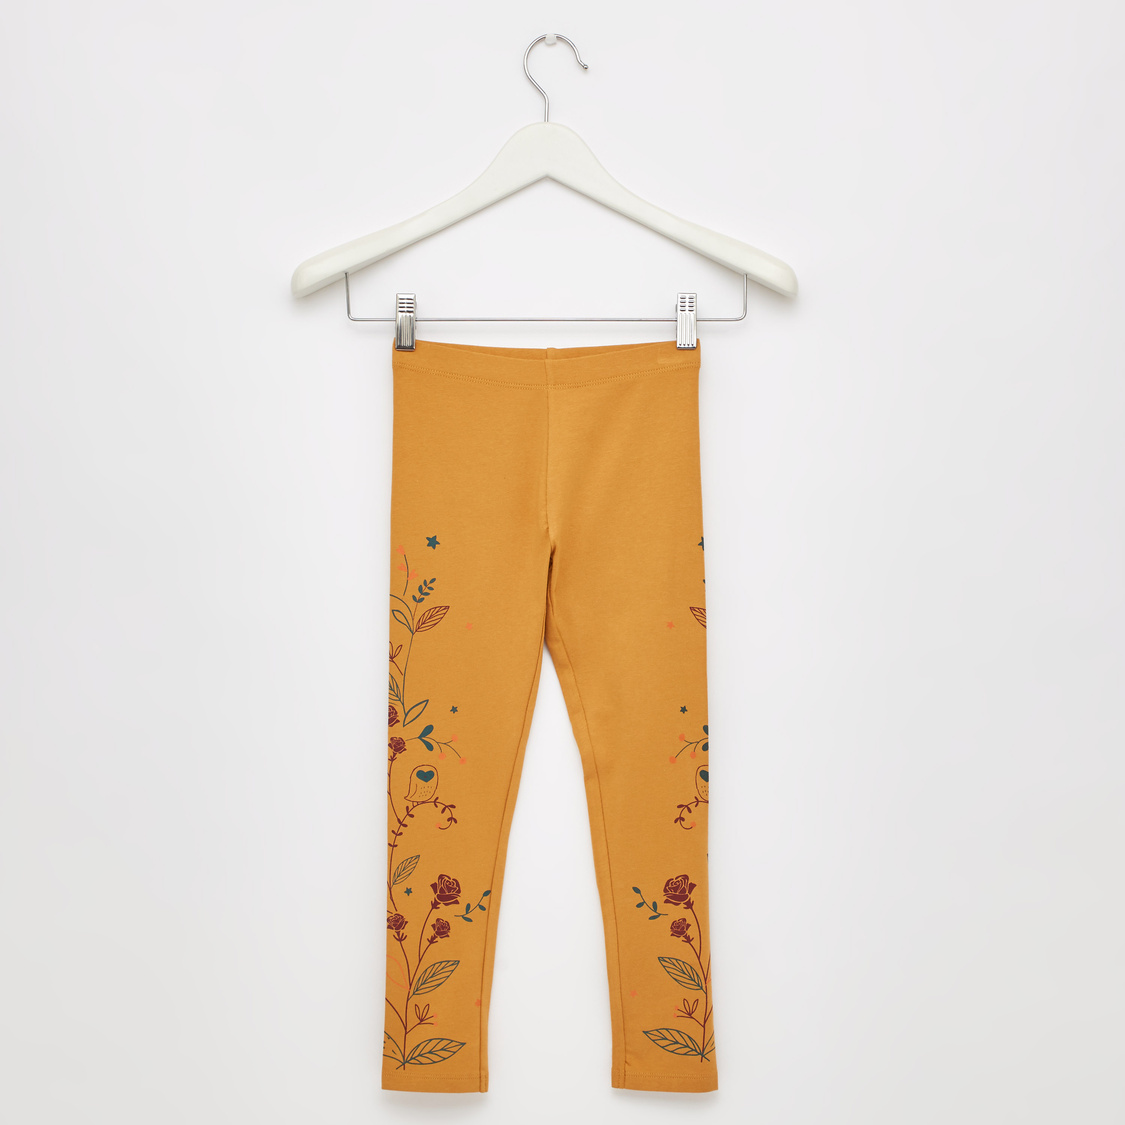 Printed Full Length Legging with Elasticated Waistband